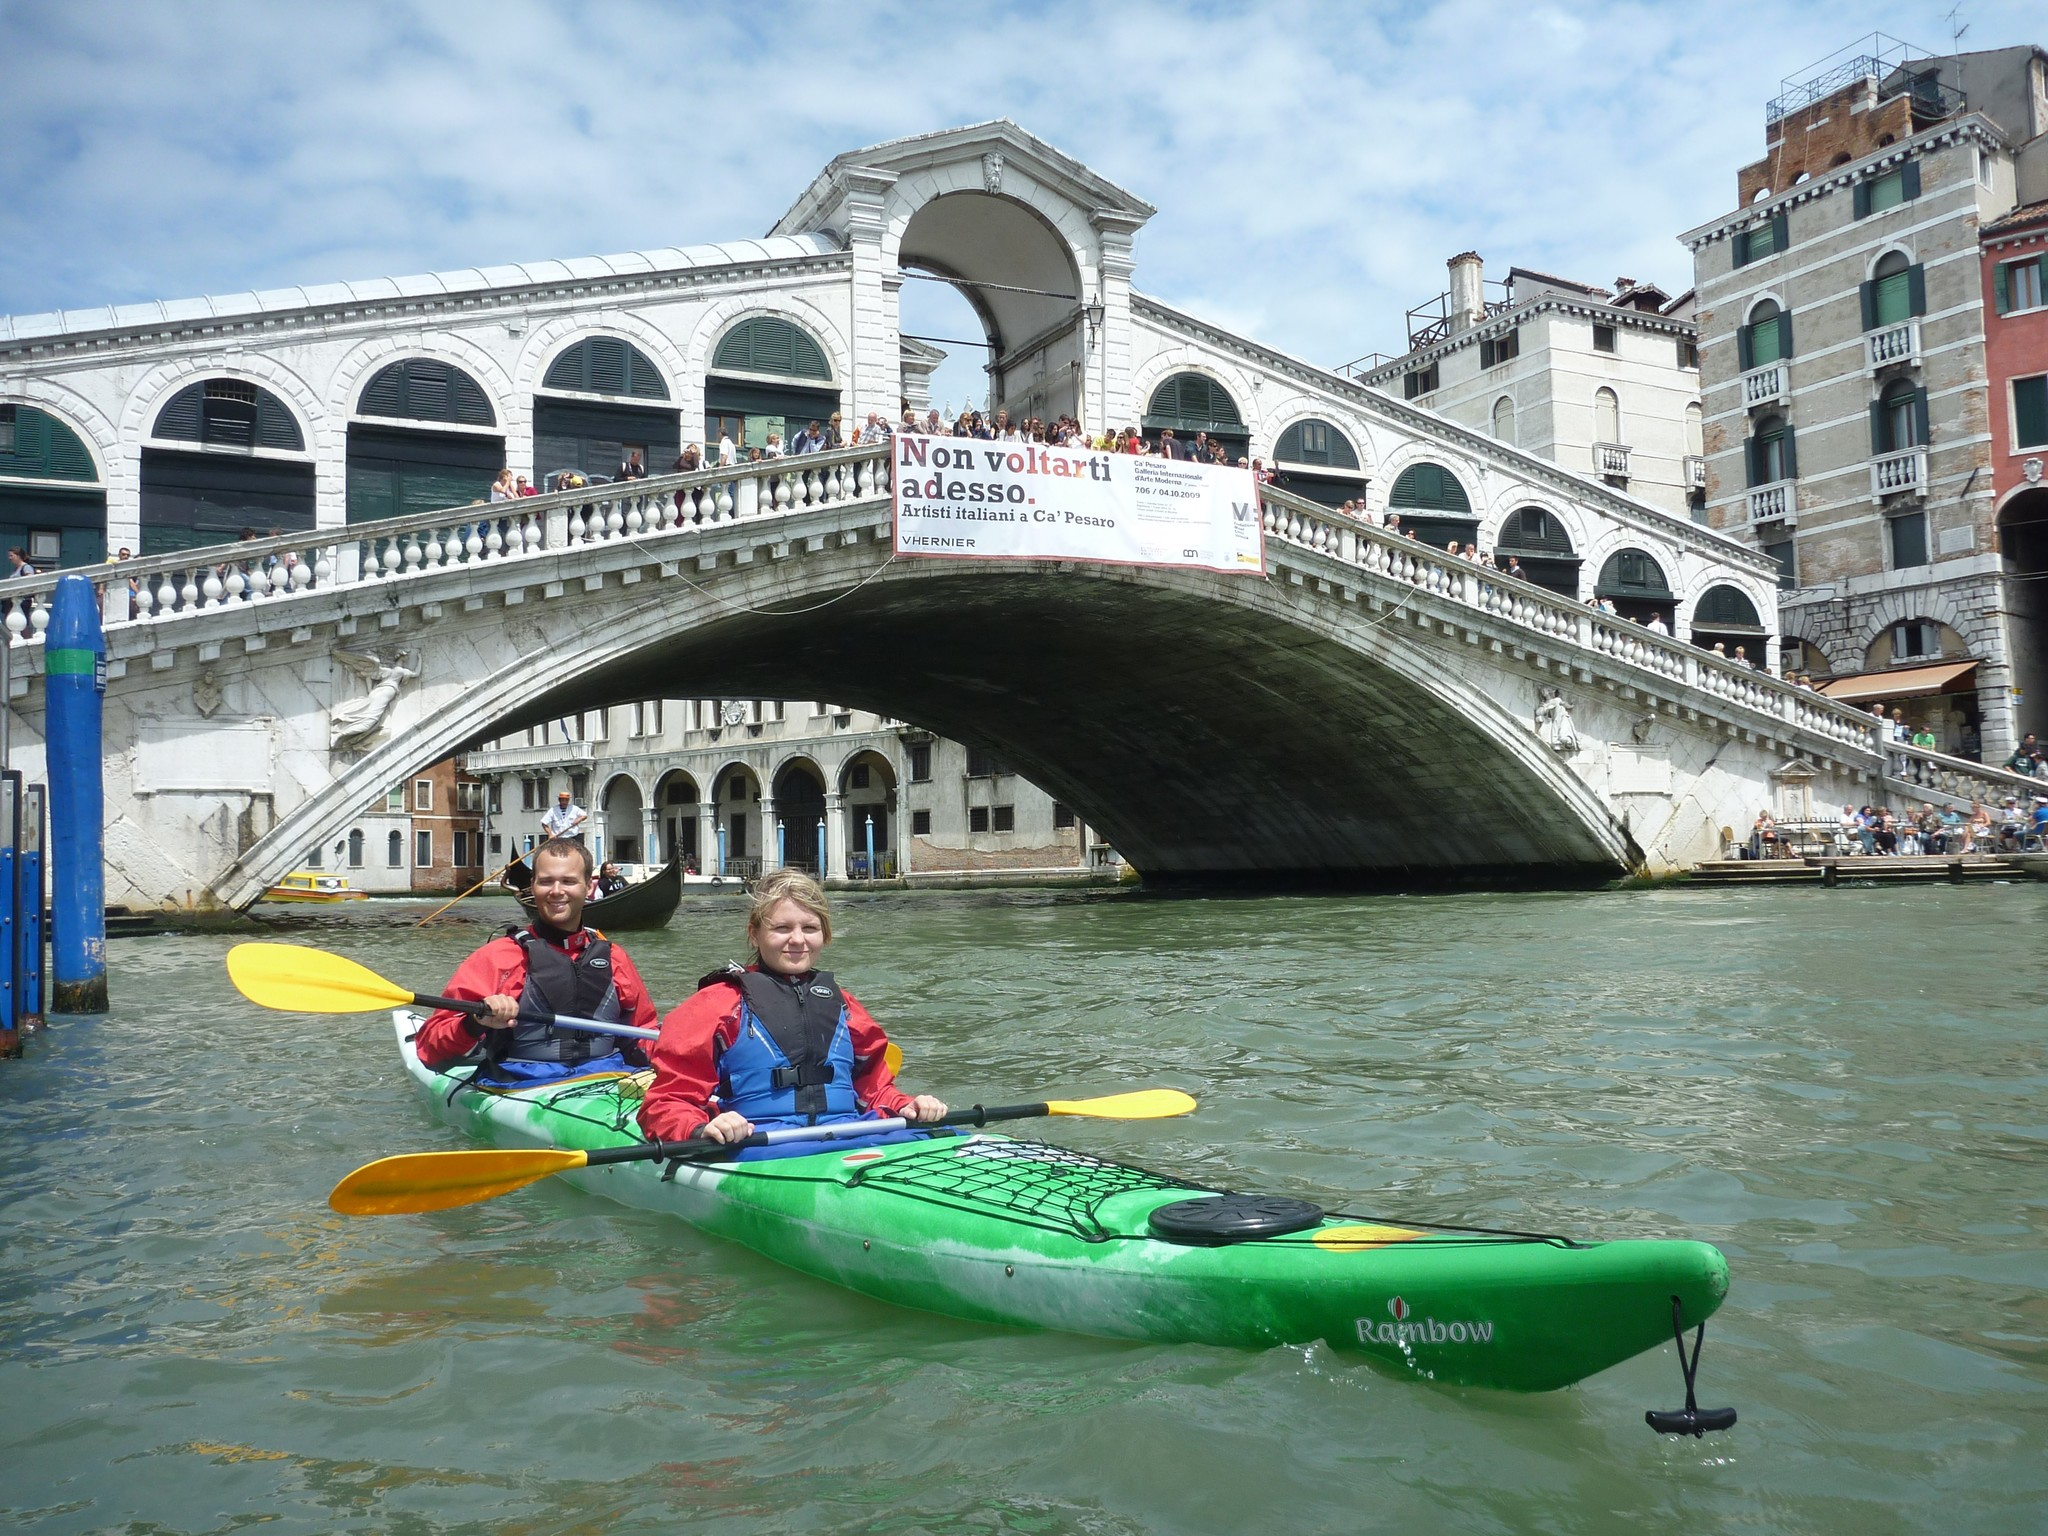 Couple in double kayak in front of the Rialto Bridge (press photo)